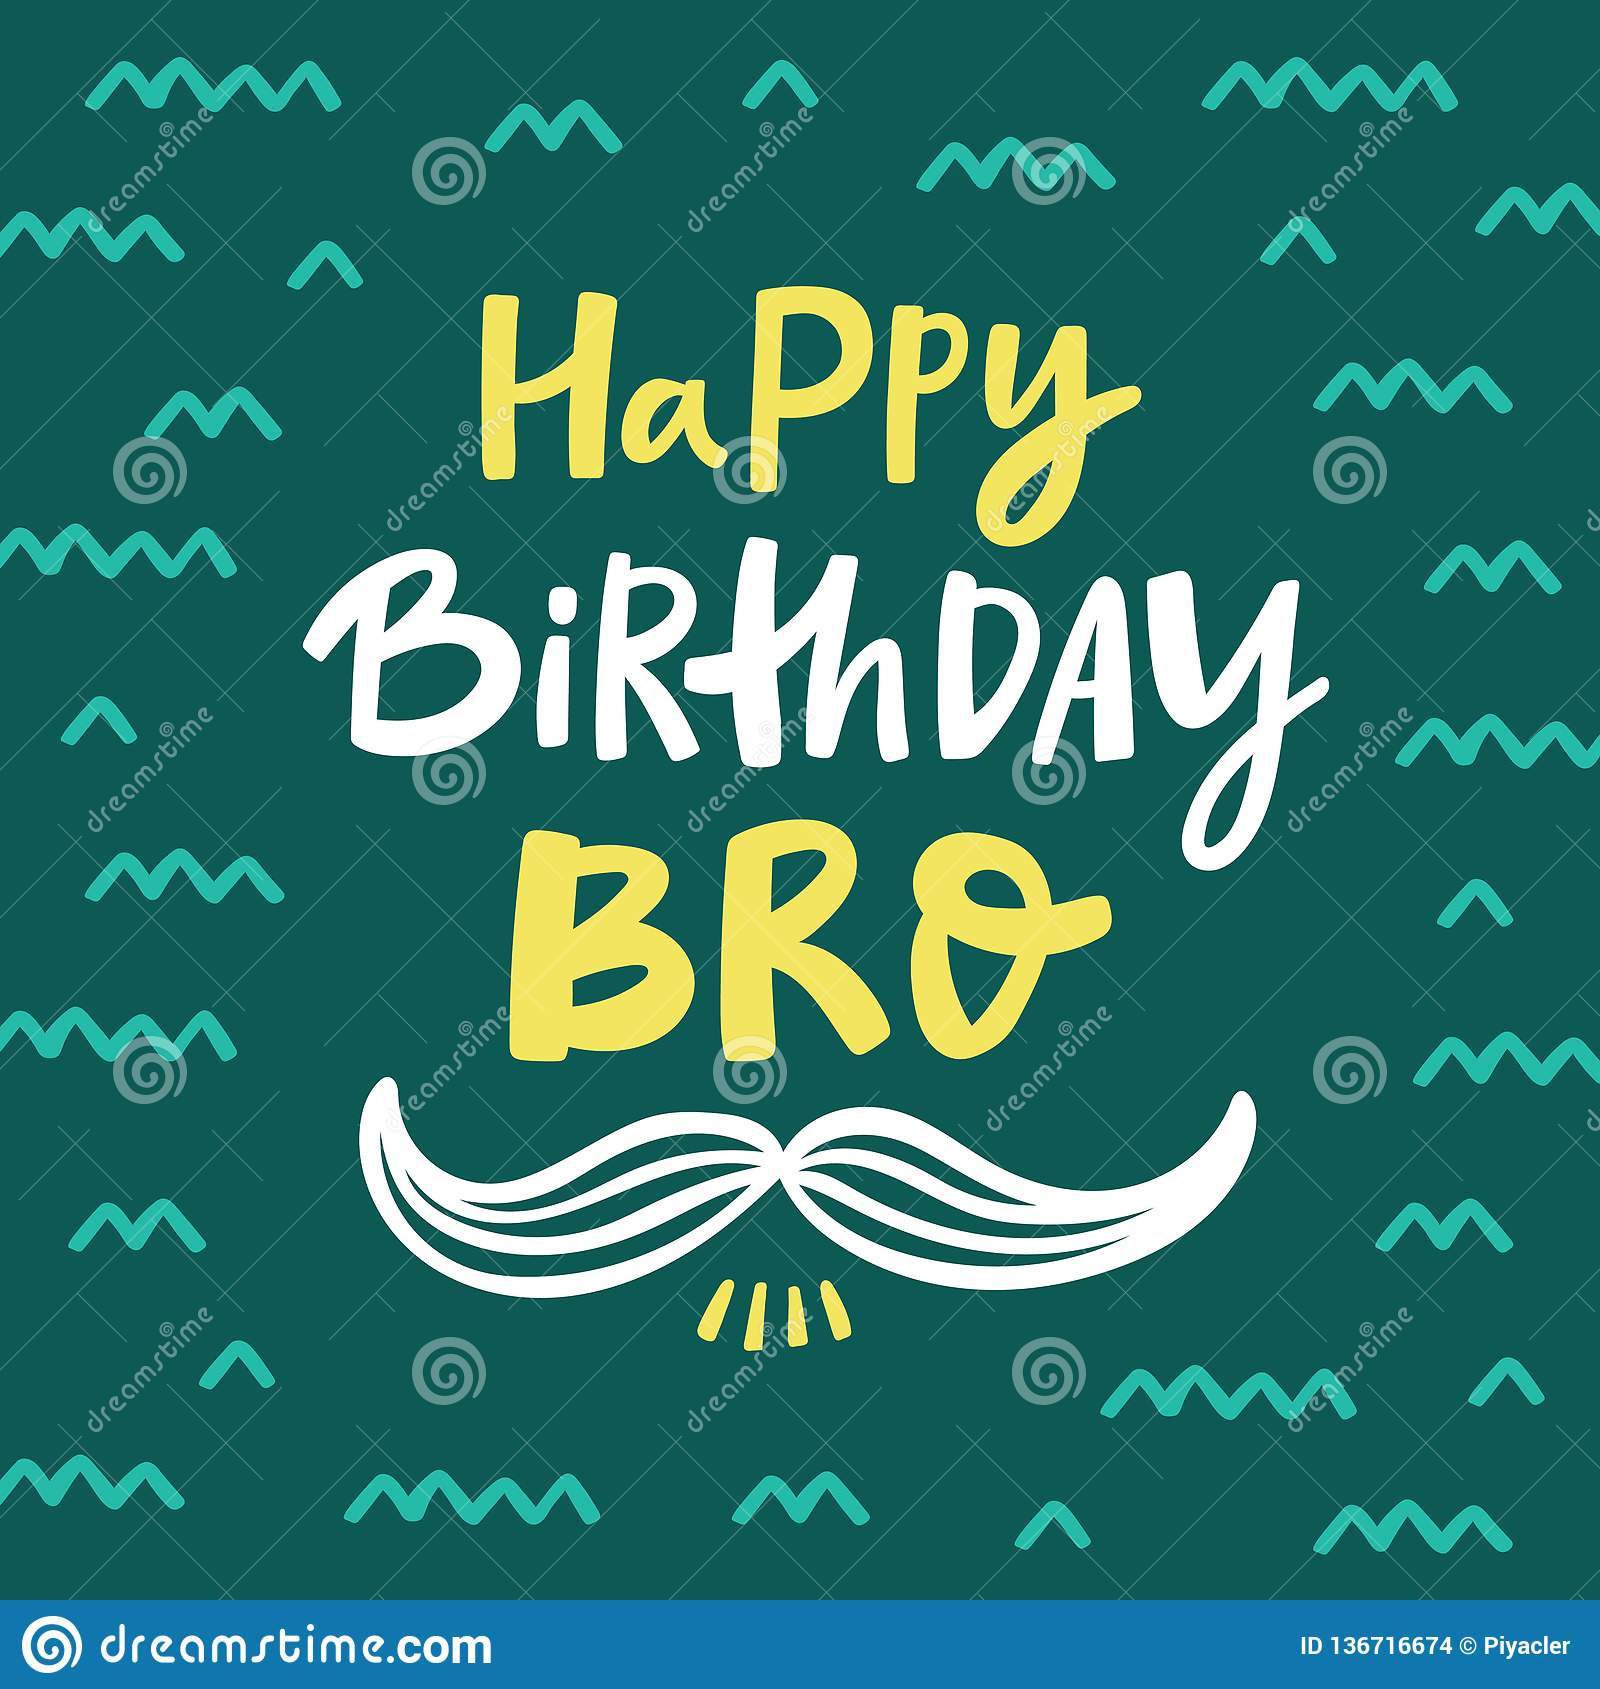 Happy Birthday Bro Greeting Card With Handdrawn Lettering Stock Vector Illustration Of Festive Sign 136716674